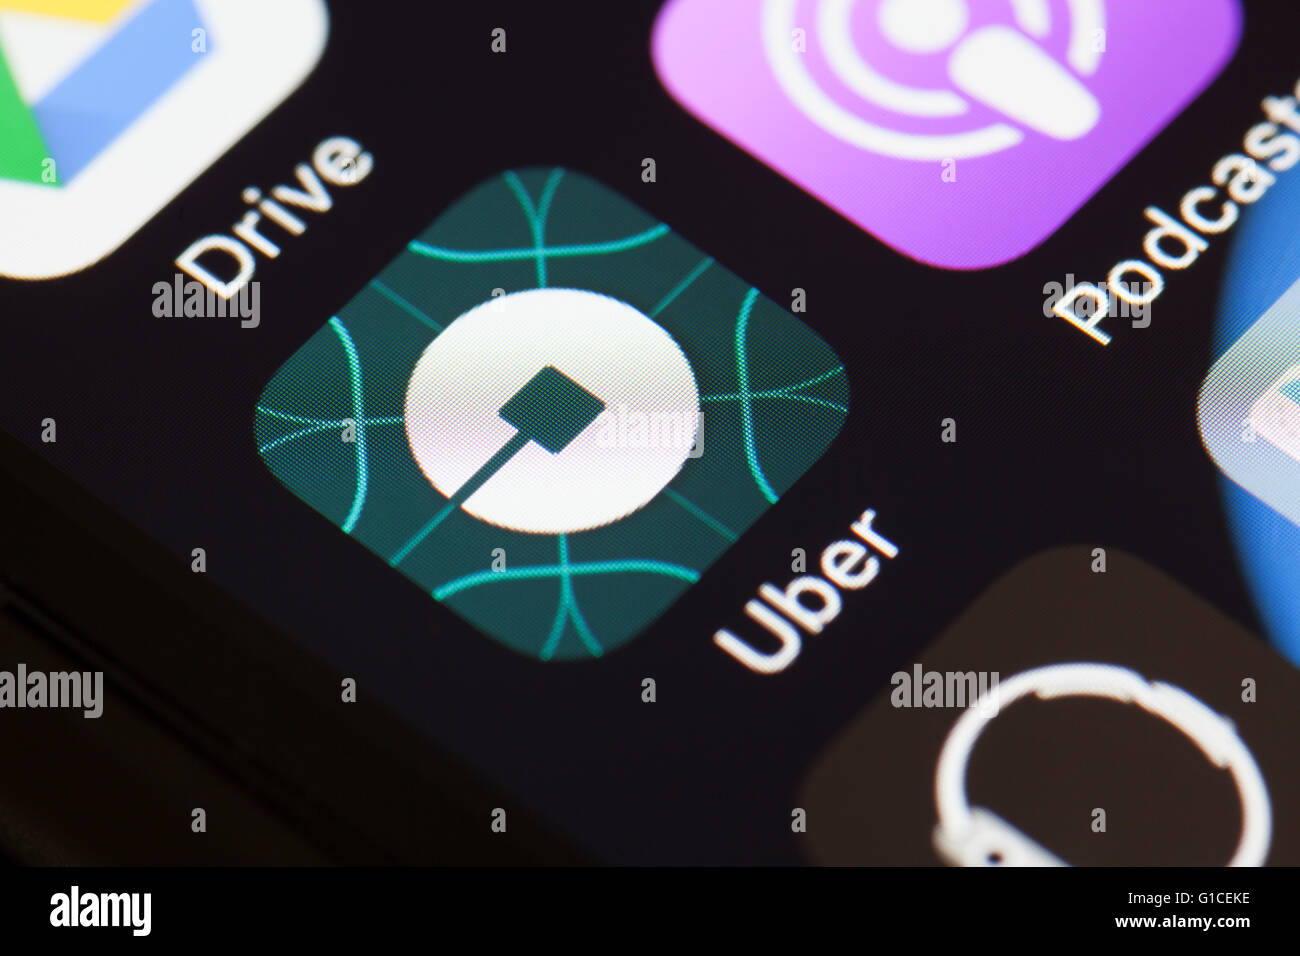 Uber app icon on mobile phone. - Stock Image